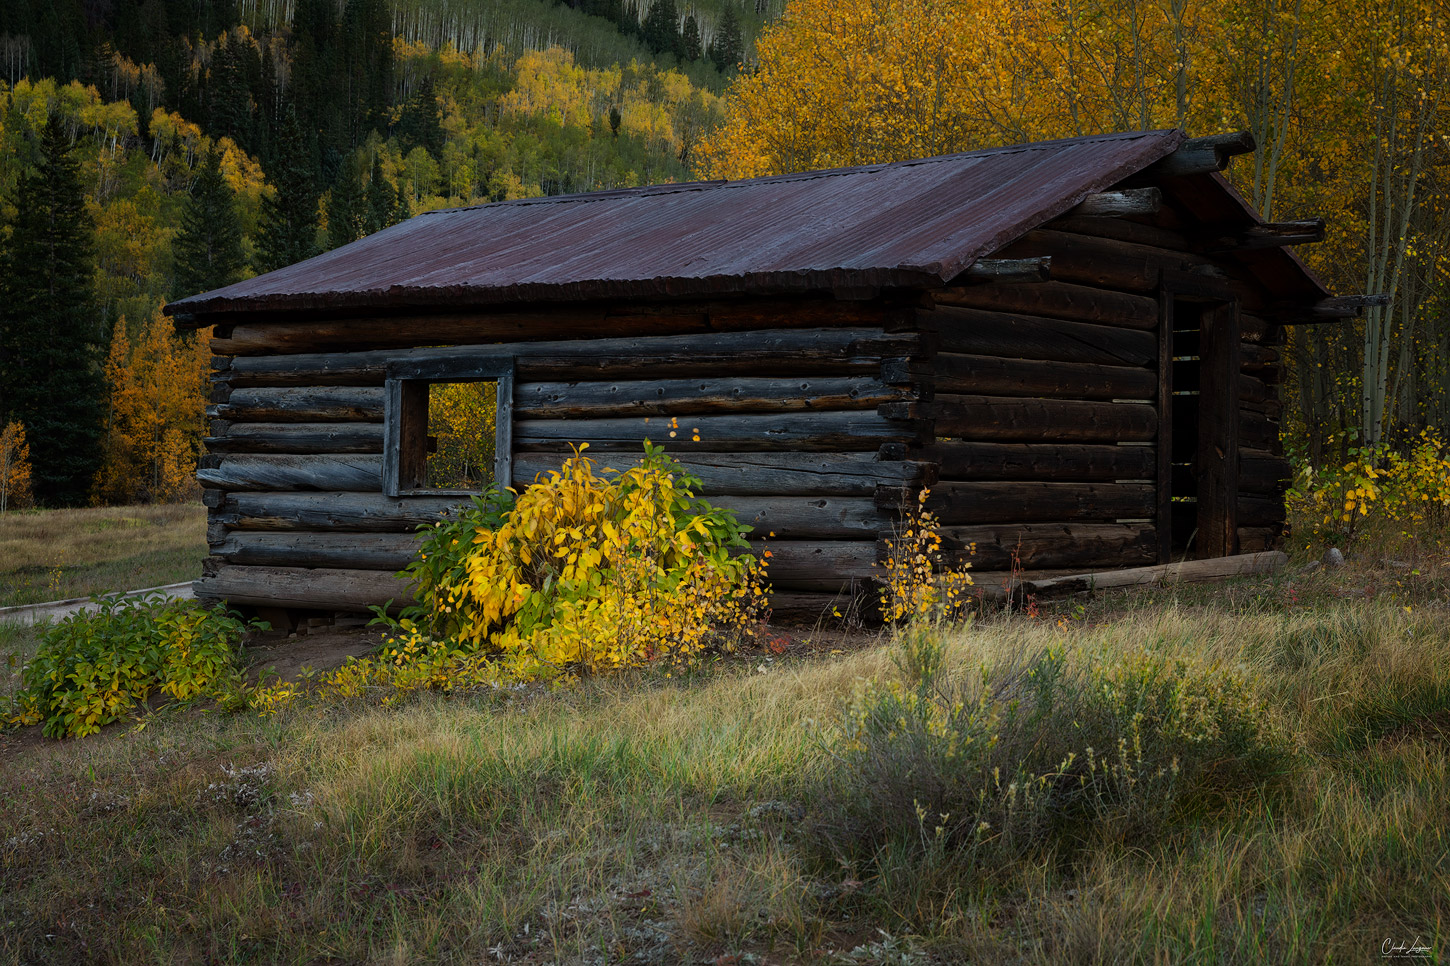 View of abandoned building in the town of Ashcroft in Colorado.